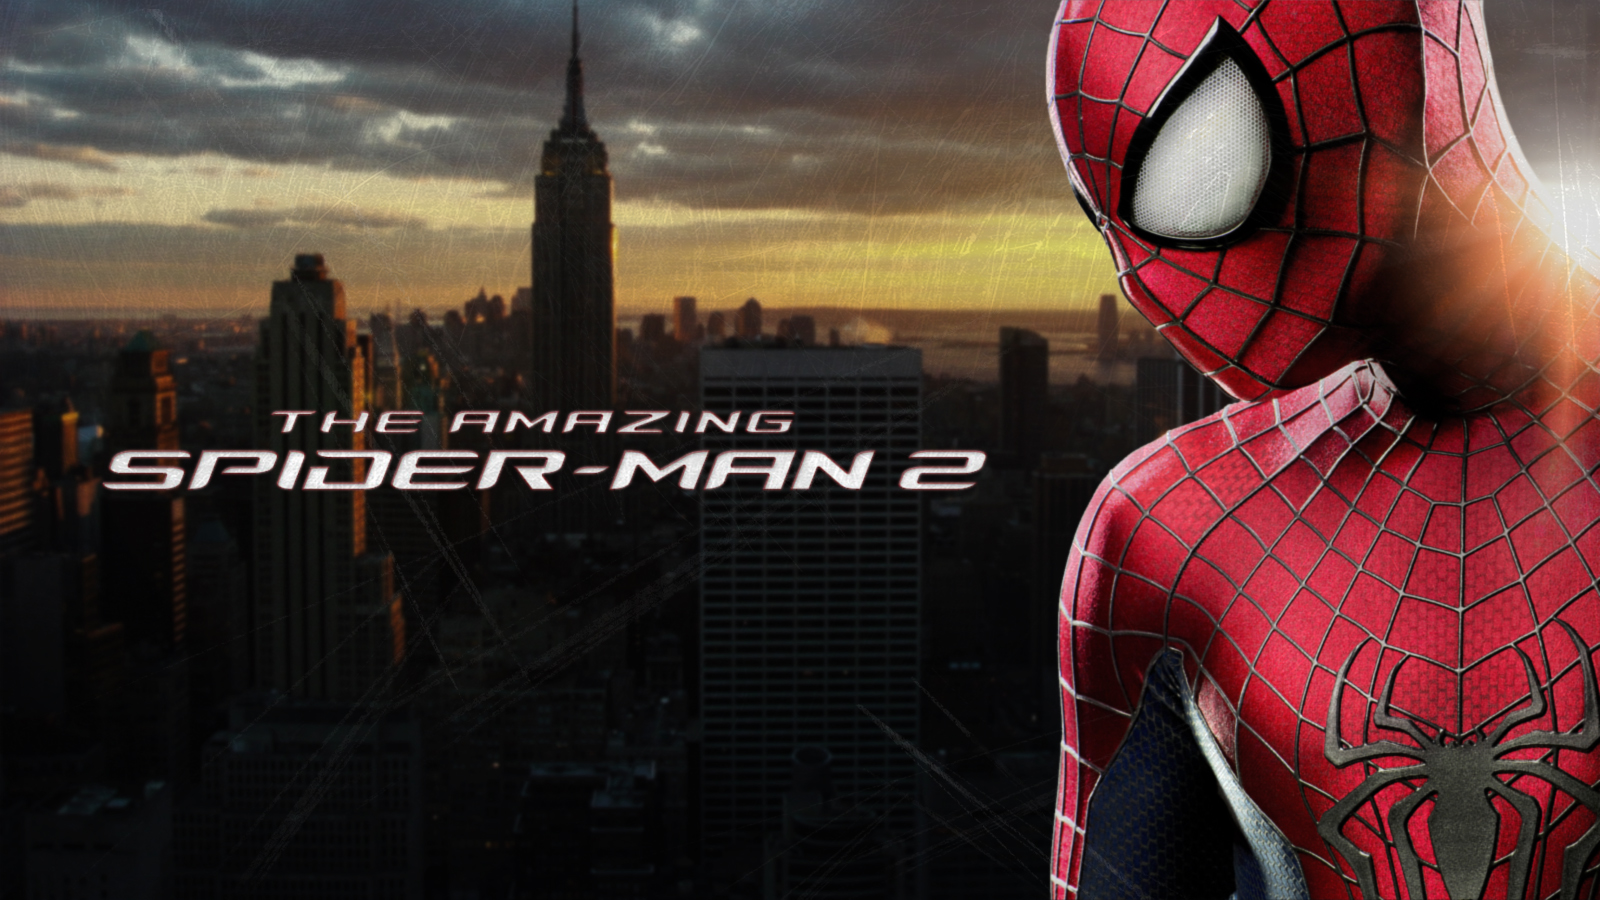 <b>The Amazing Spider Man</b> 2 <b>Wallpaper</b> Hd <b>1080p</b> | HD <b>Wallpapers</b>